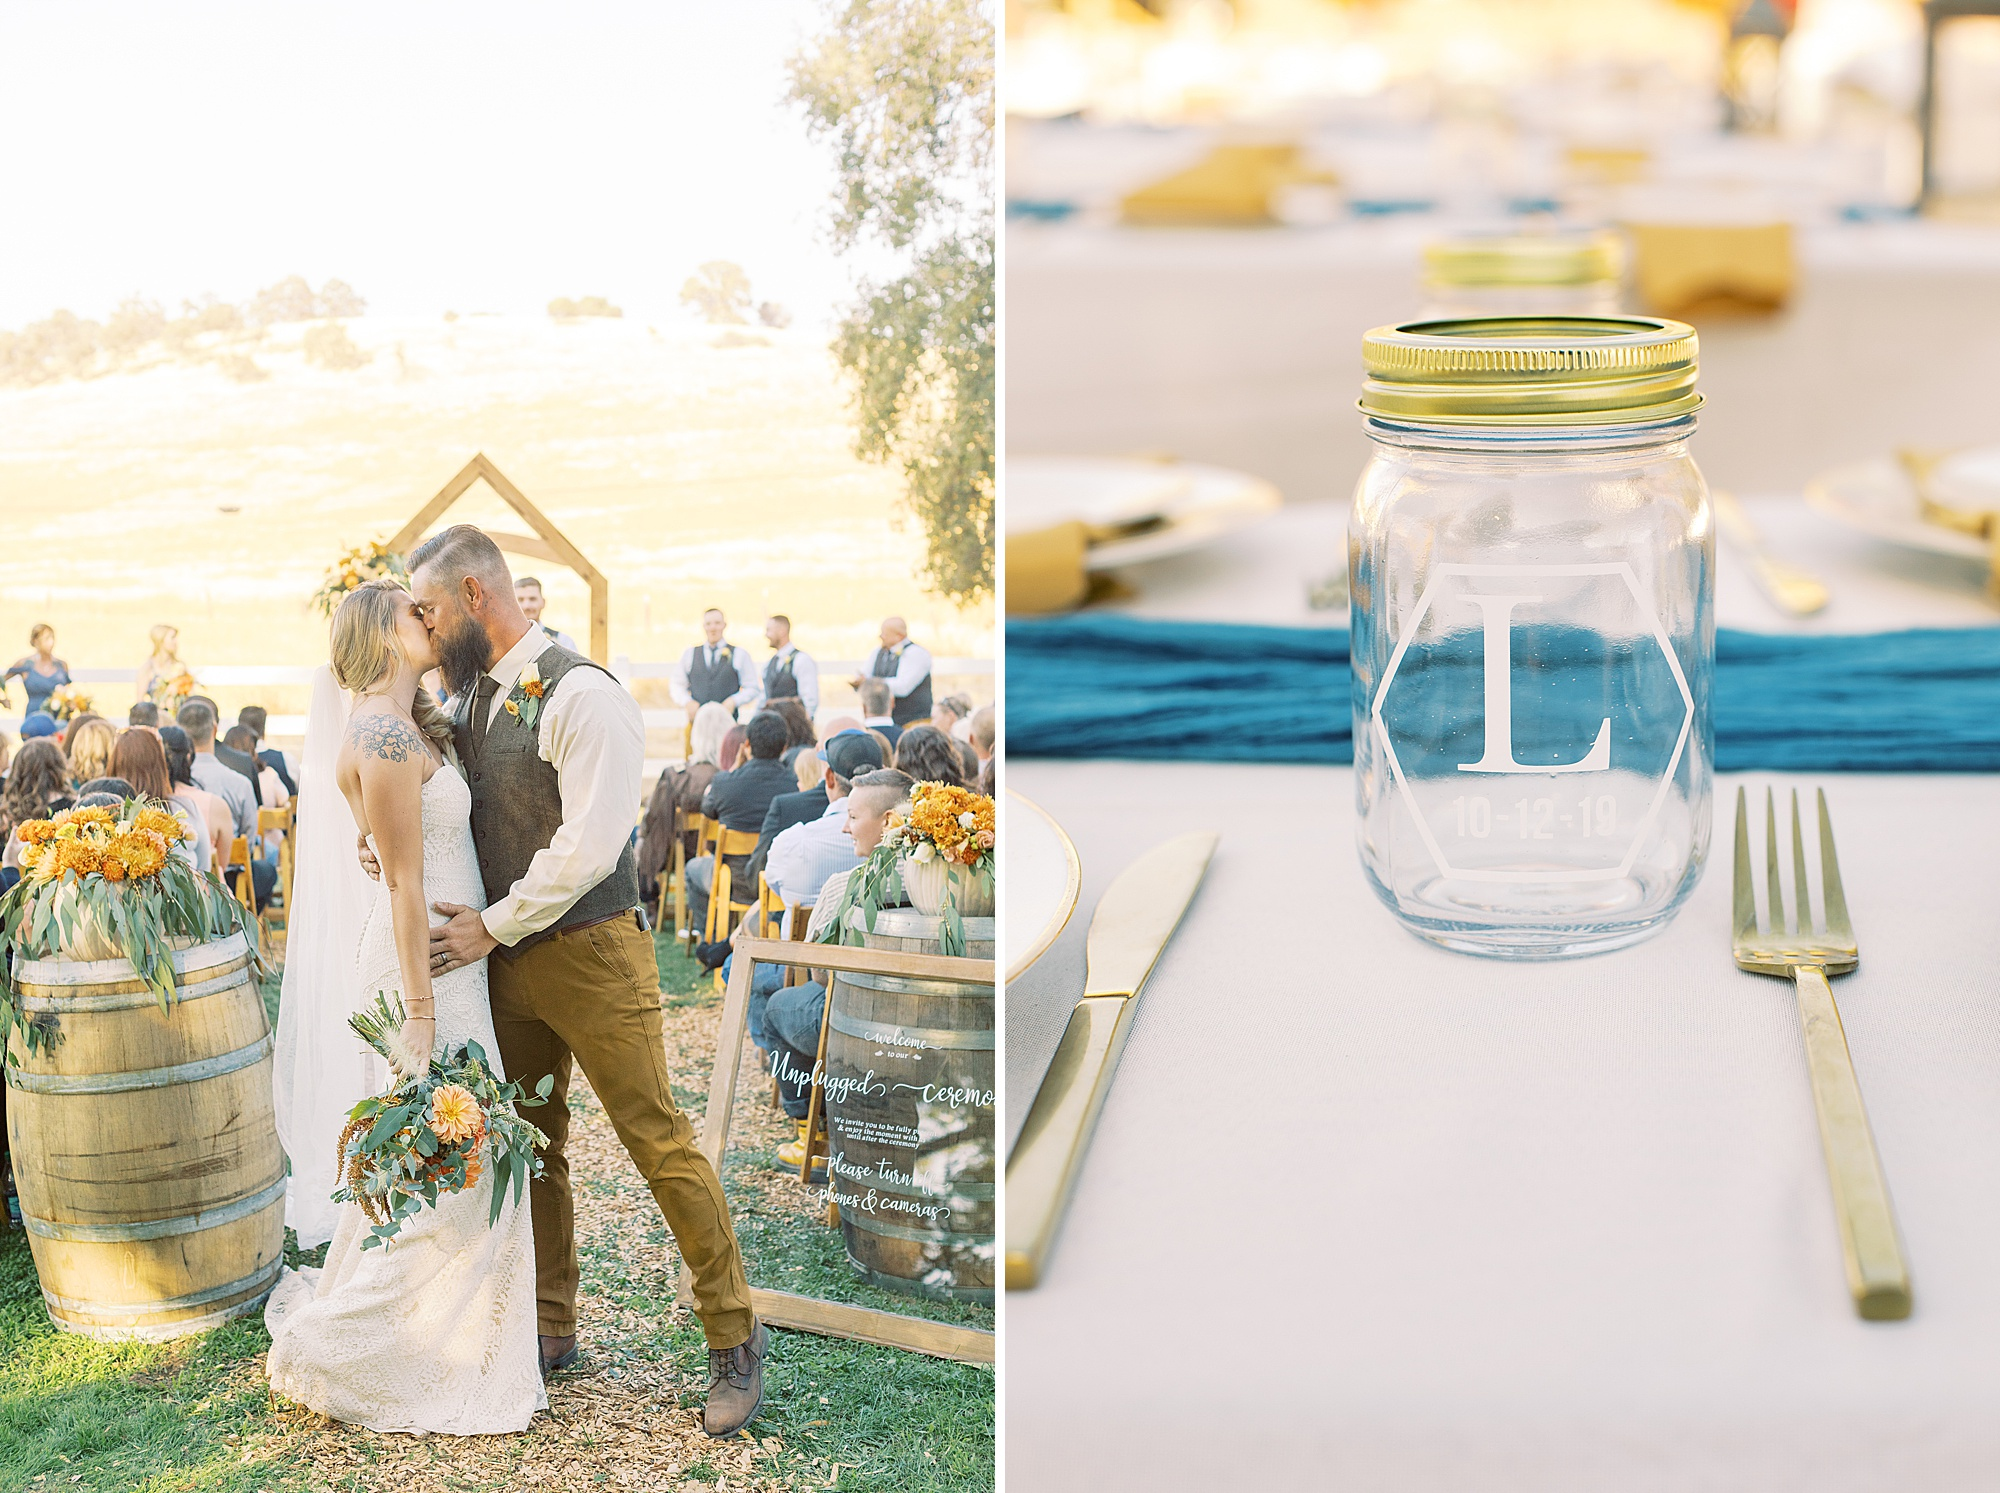 Sonora Wedding Photographer - Tiffany and Jesse - Ashley Baumgartner - Private Estate Summer Wedding_0113.jpg